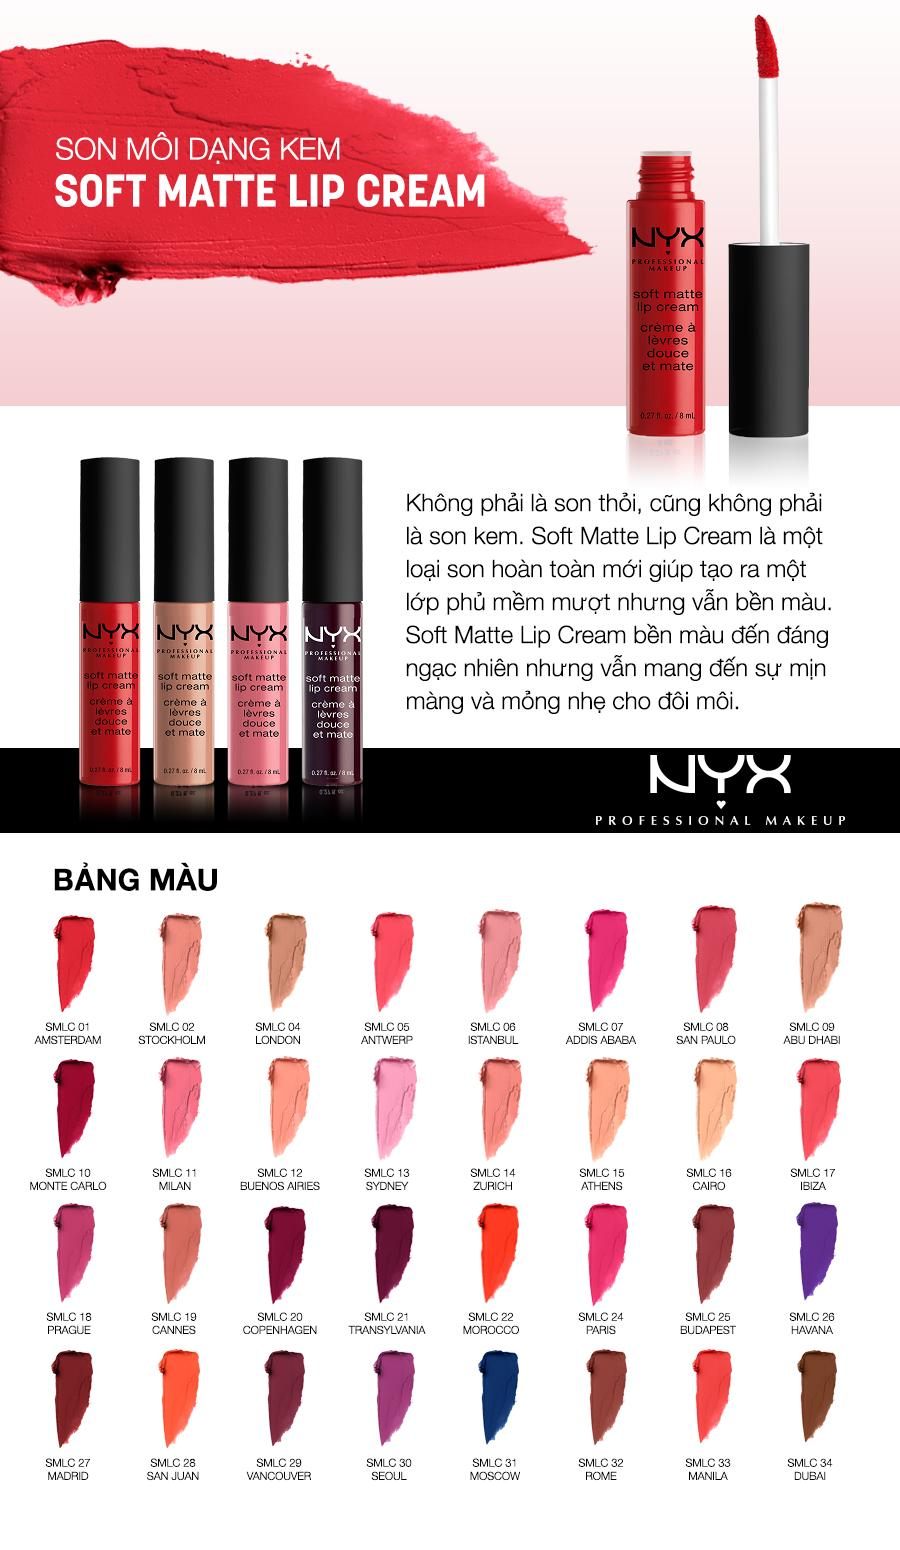 Son kem NYX Professional Makeup Soft Matte Lip Cream SMLC34 Dubai